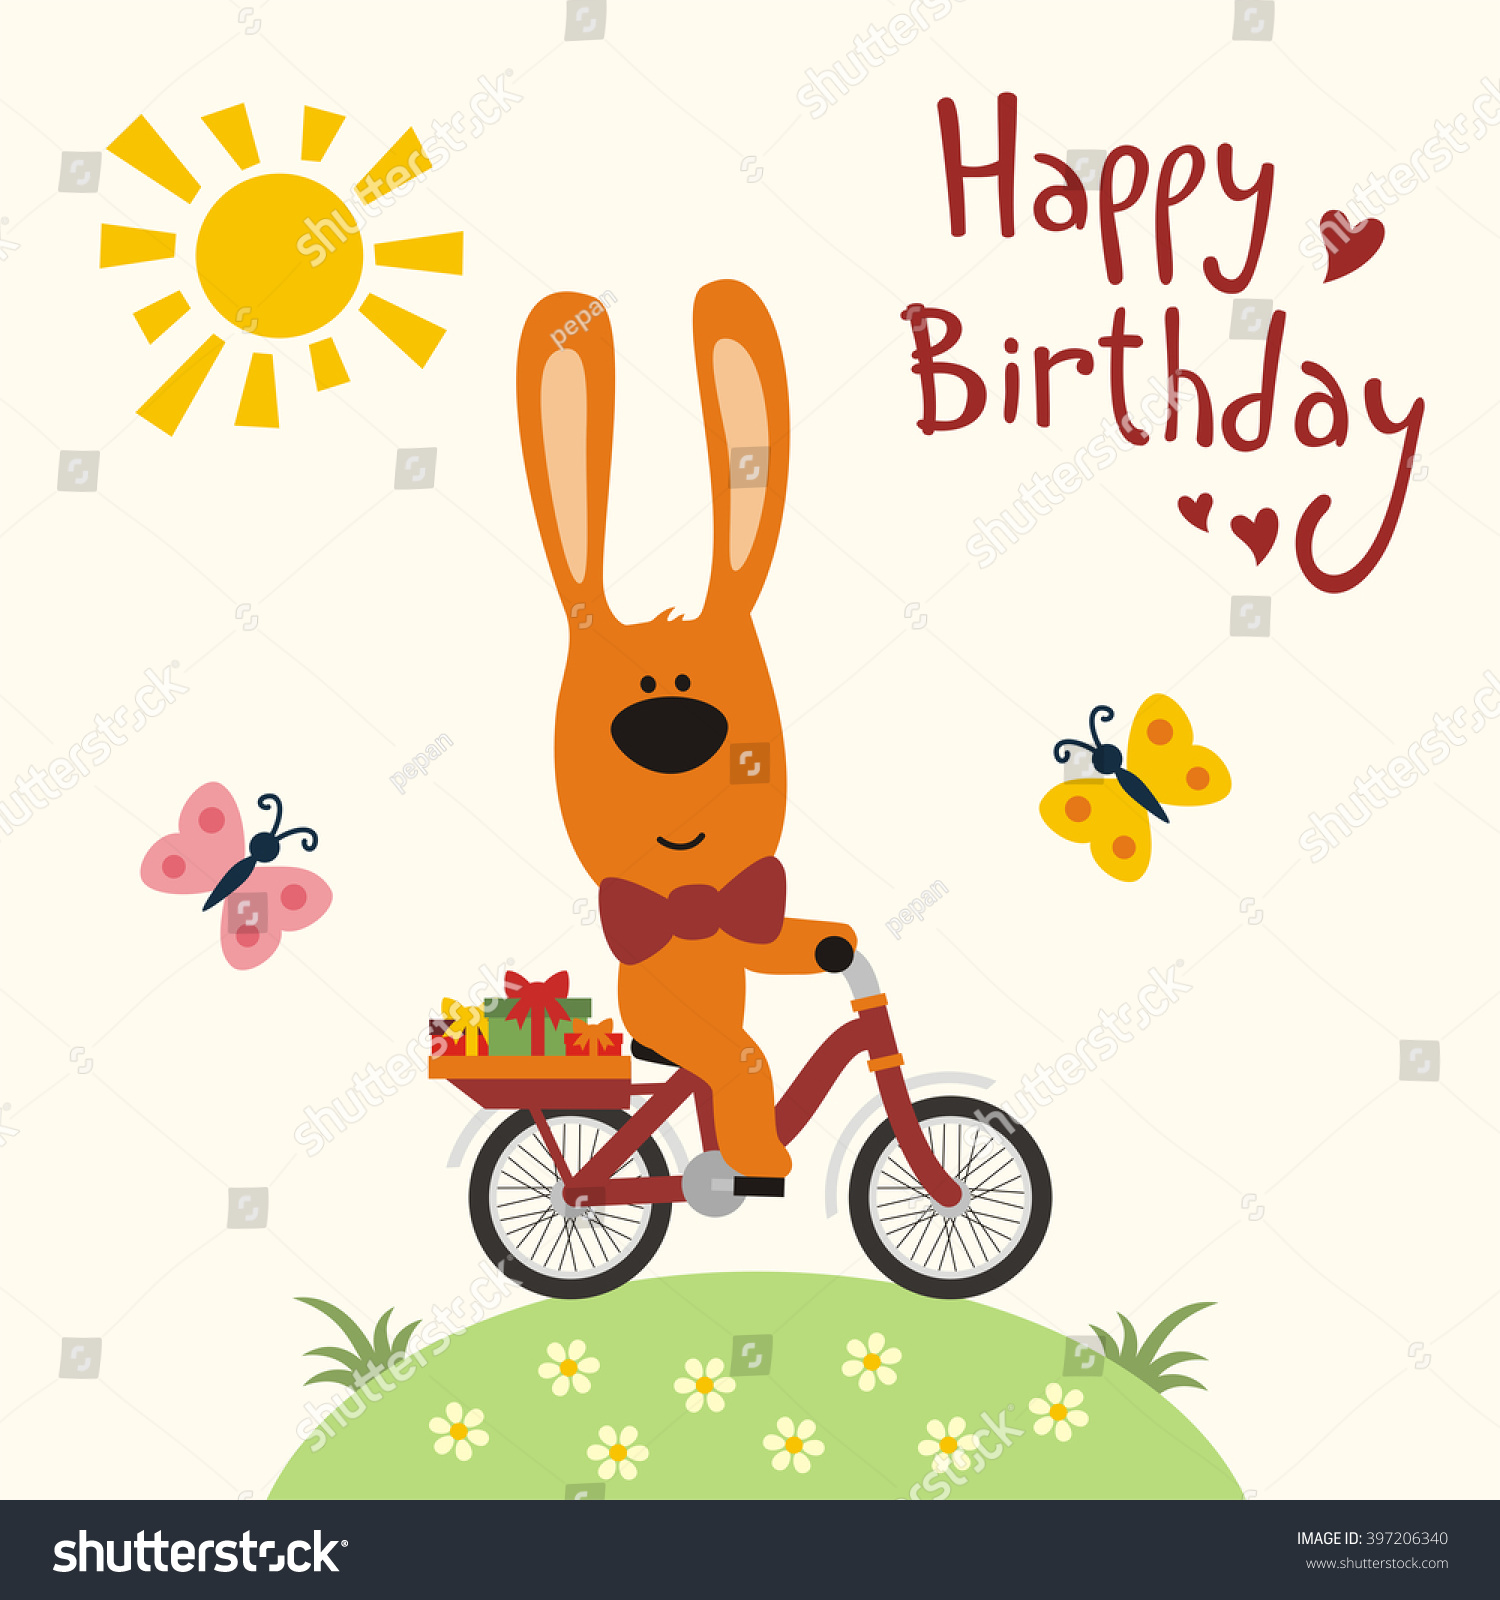 Happy birthday funny rabbit on bicycle stock vector 397206340 happy birthday funny rabbit on bicycle with birthday gifts butterflies sun happy negle Image collections